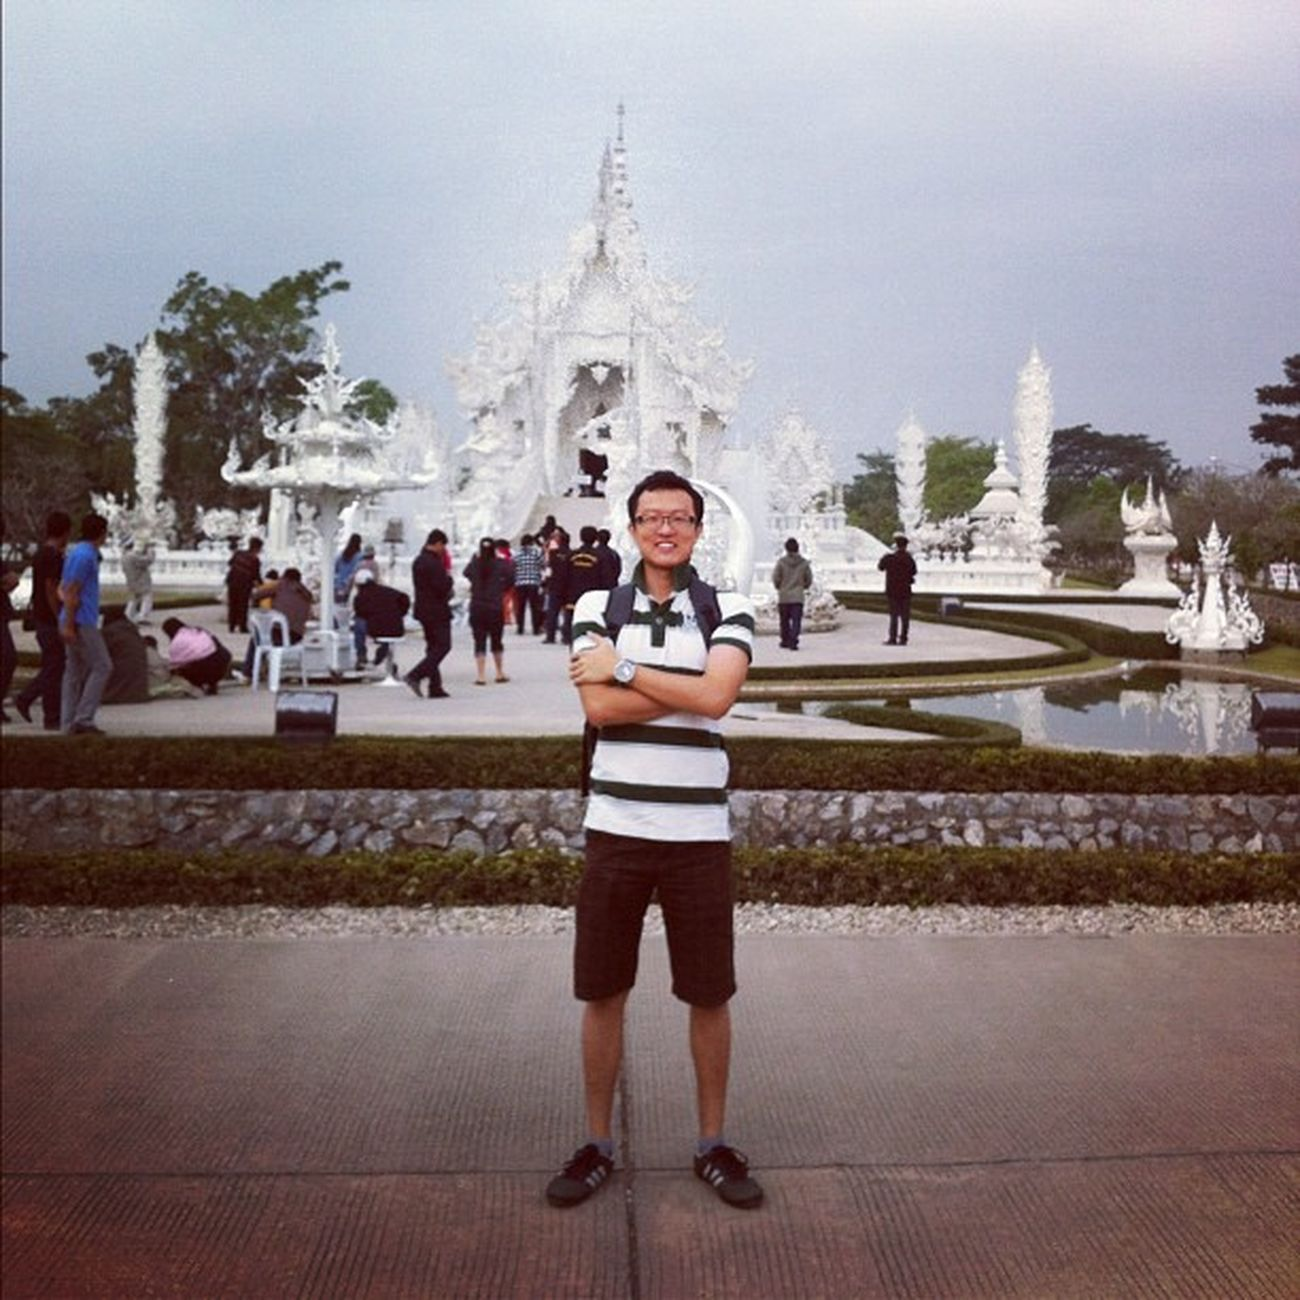 Thailand Holiday Chiangrai Temples whitetemple watrongkhun getaway popular random placesofinterest white asia